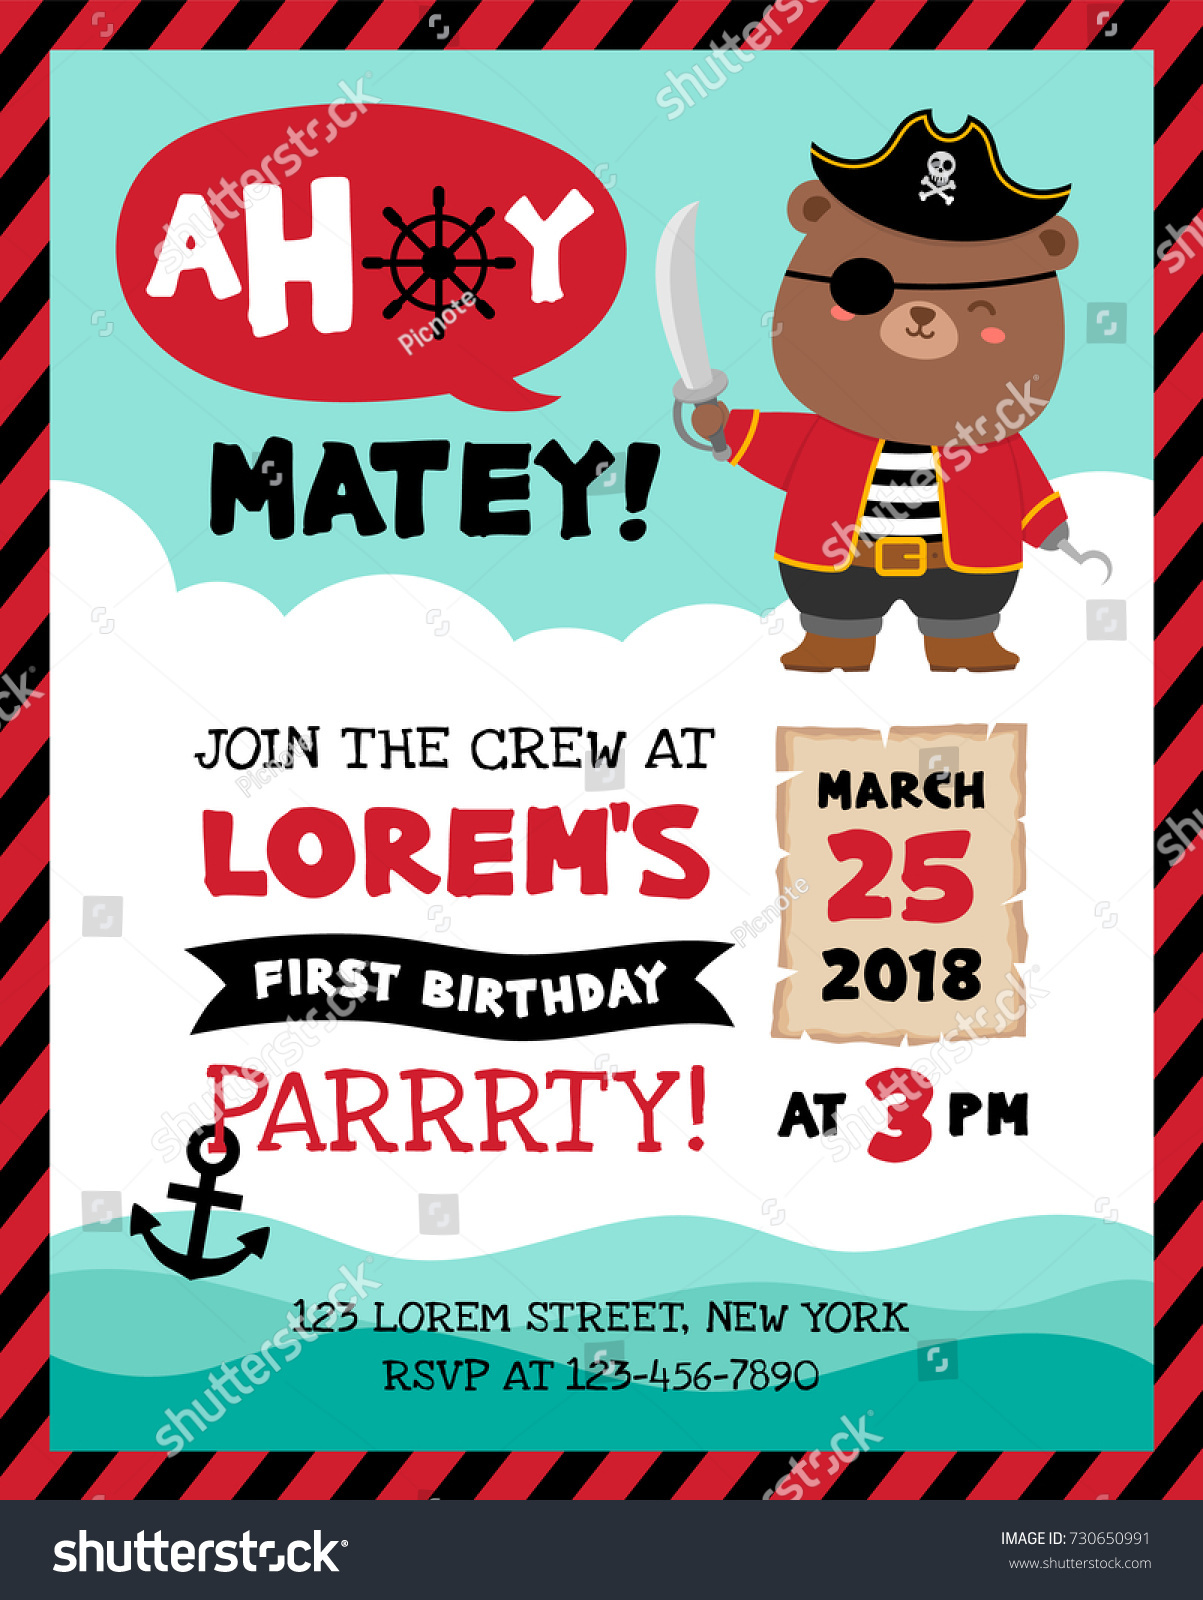 Bear Party Invitations Images - Party Invitations Ideas